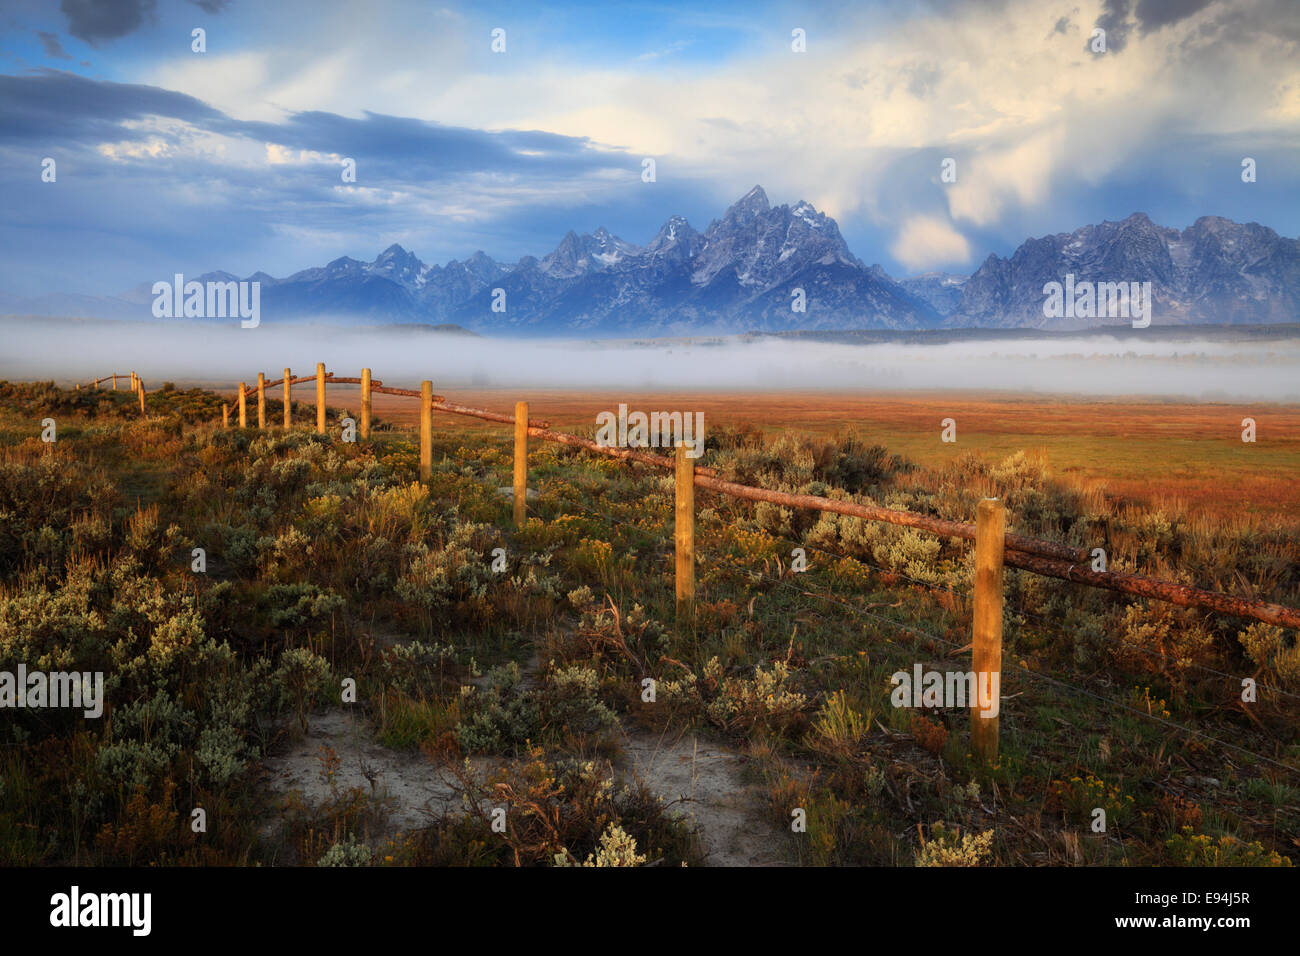 Dramatic Teton mountain range near Triangle X Ranch in Grand Teton National Park, Wyoming - Stock Image